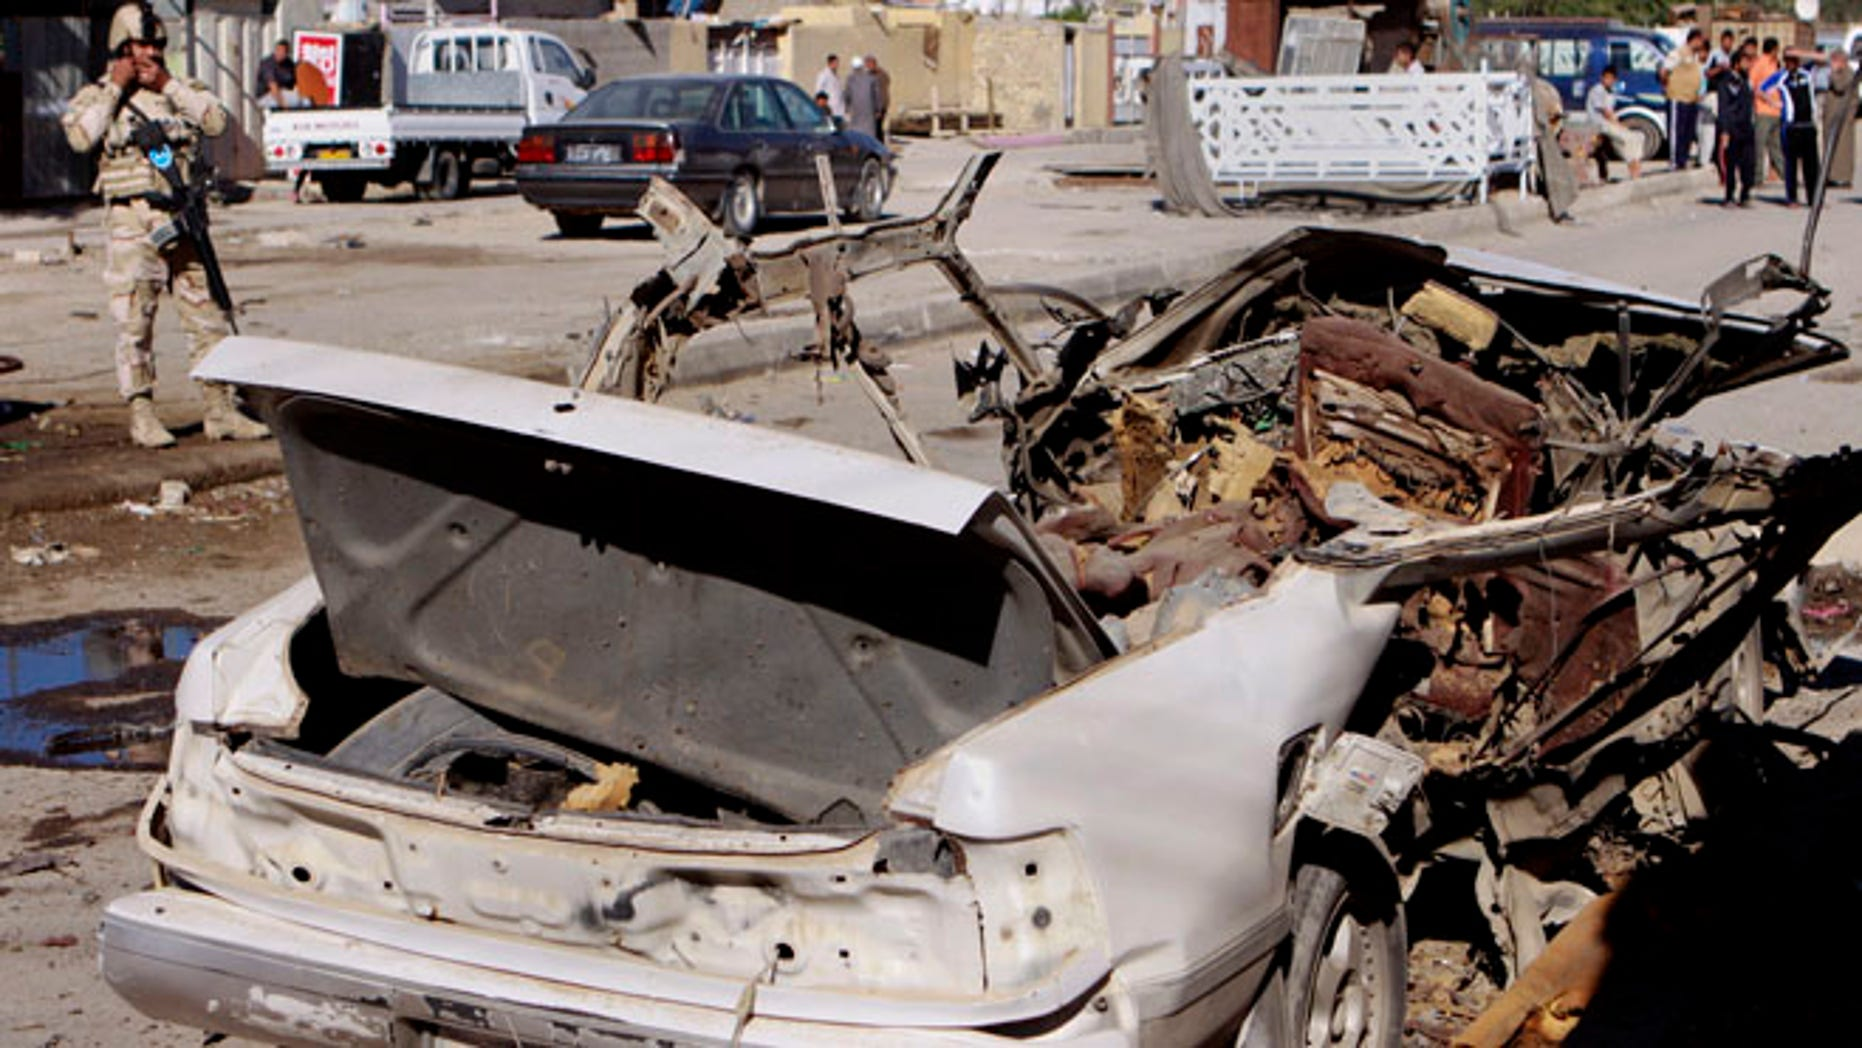 March 19, 2013: A federal policeman stands guard at the scene of a car bomb attack in the Shiite stronghold of Sadr City, Baghdad, Iraq. Insurgents unleashed deadly attacks Tuesday against Shiite areas in Baghdad, killing and wounding scores of people, police said.